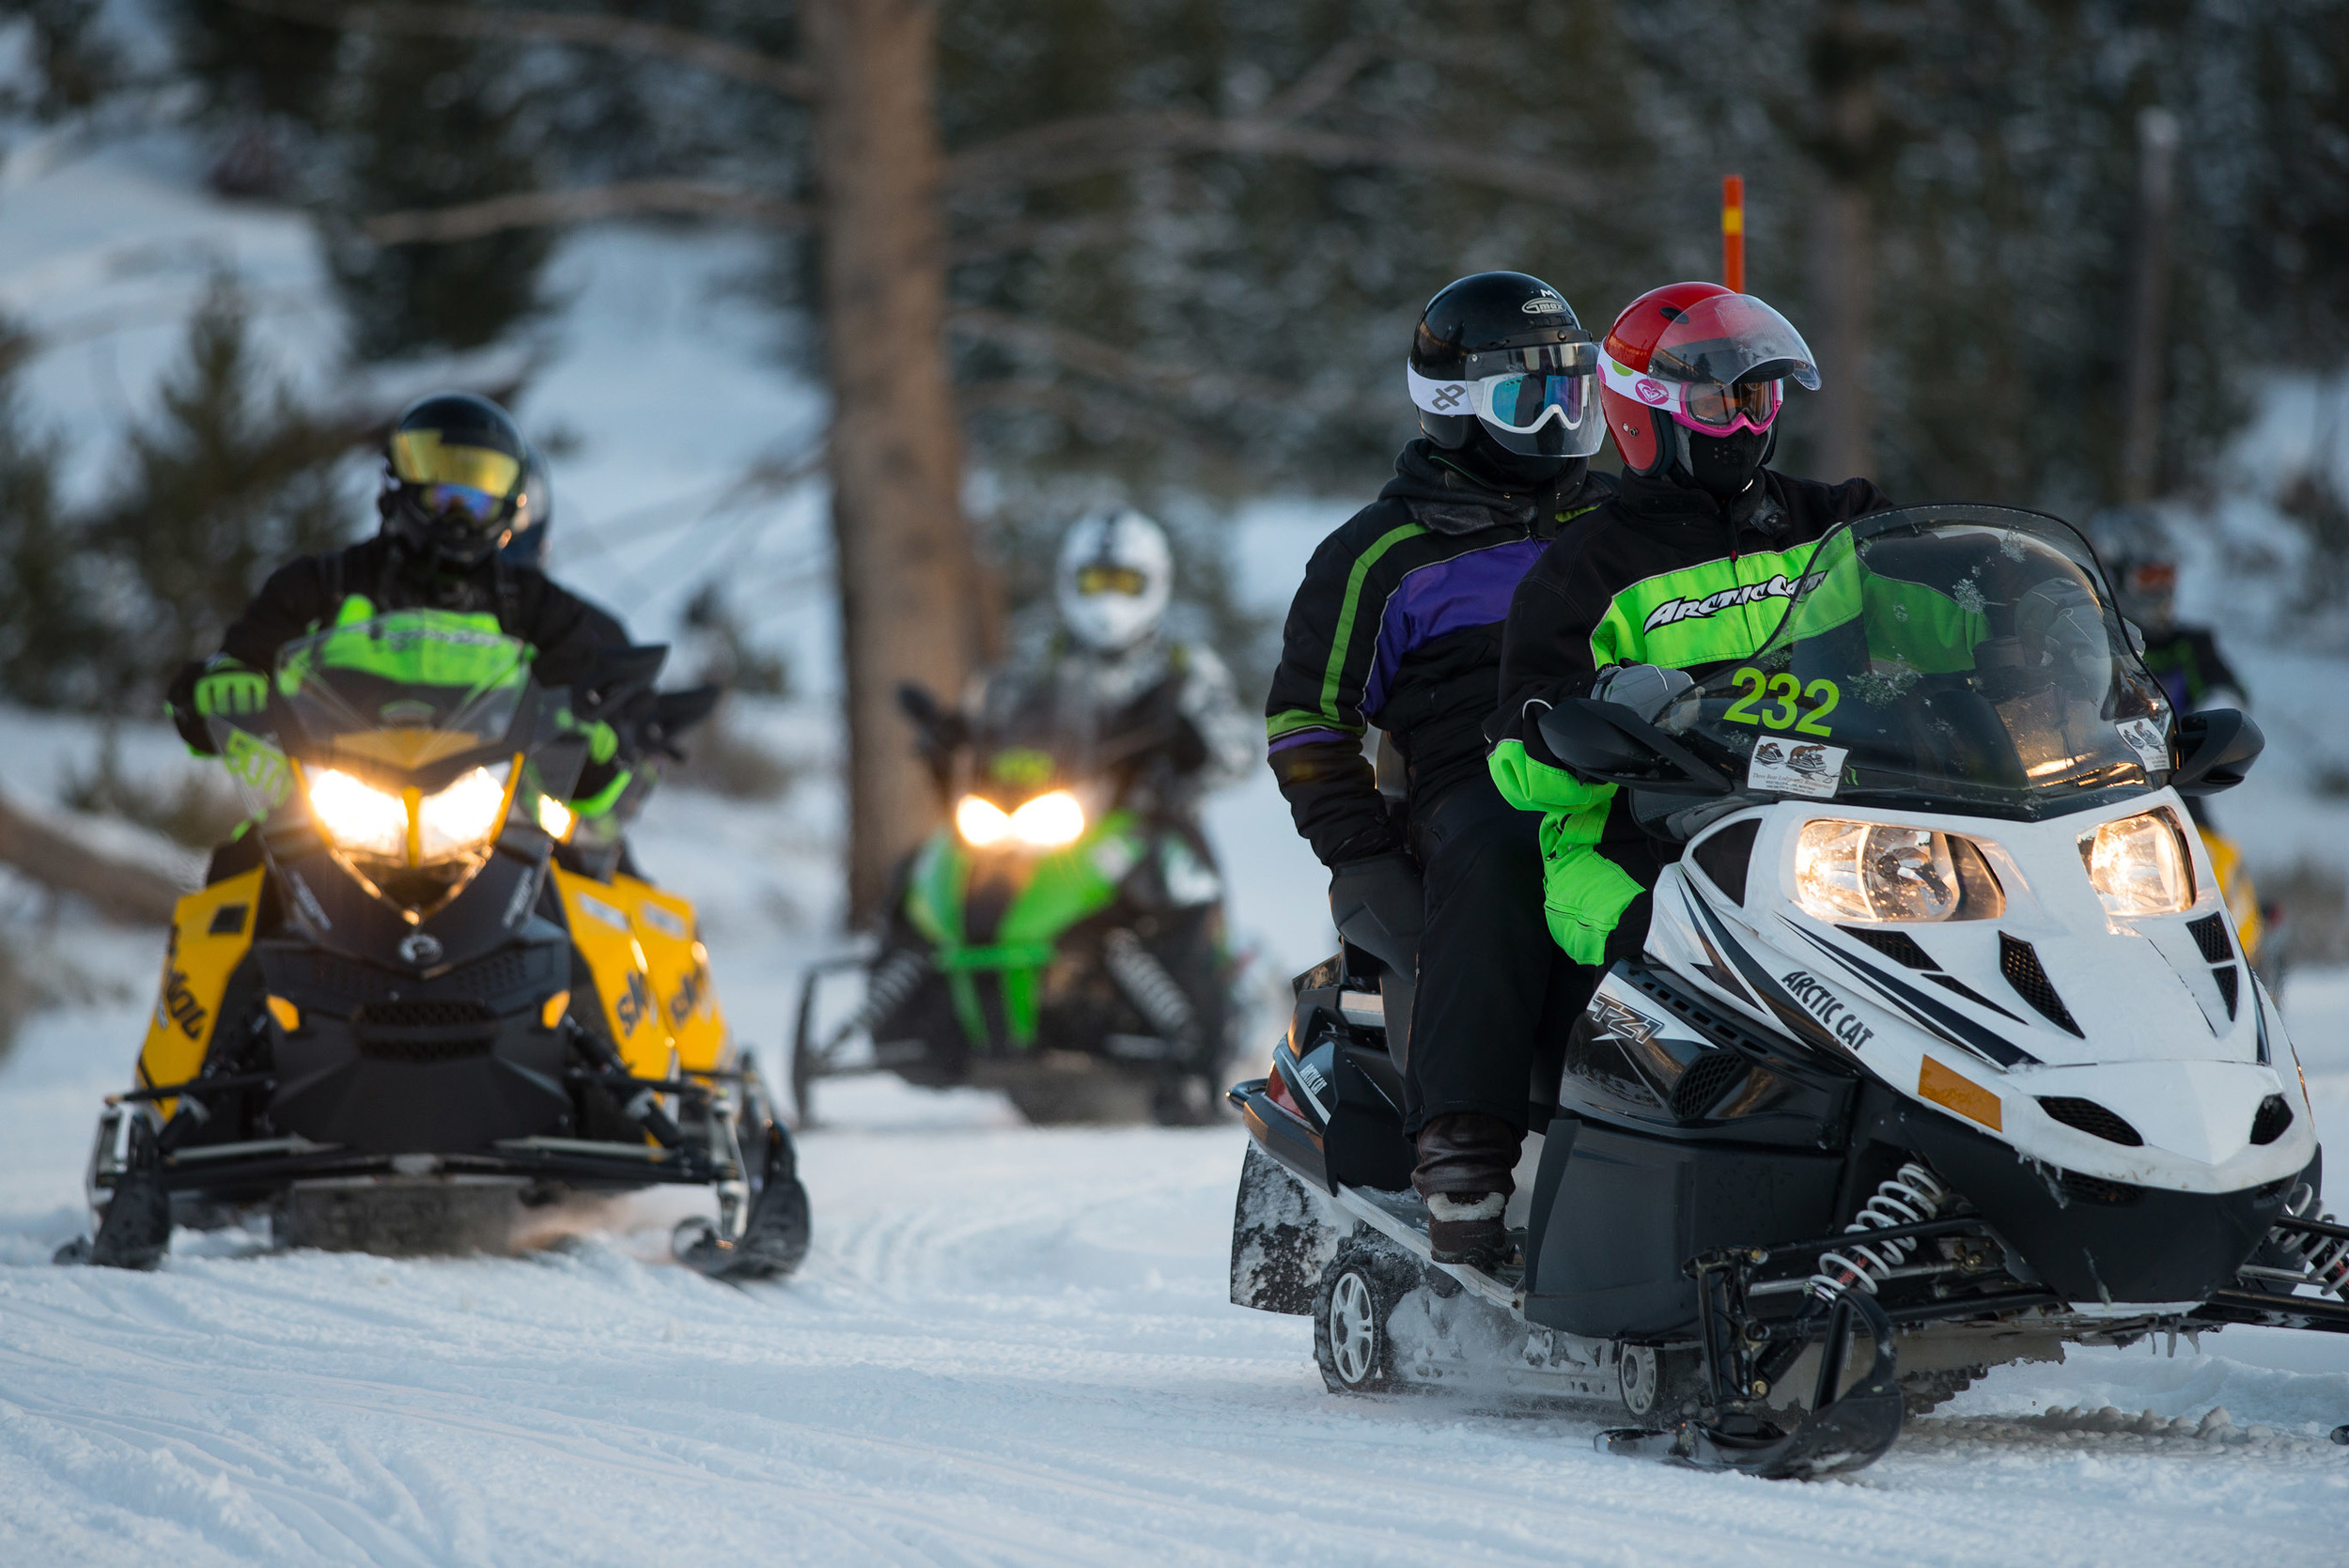 Look for good snowmobile and hotel combo packages for better rental rates in Yellowstone